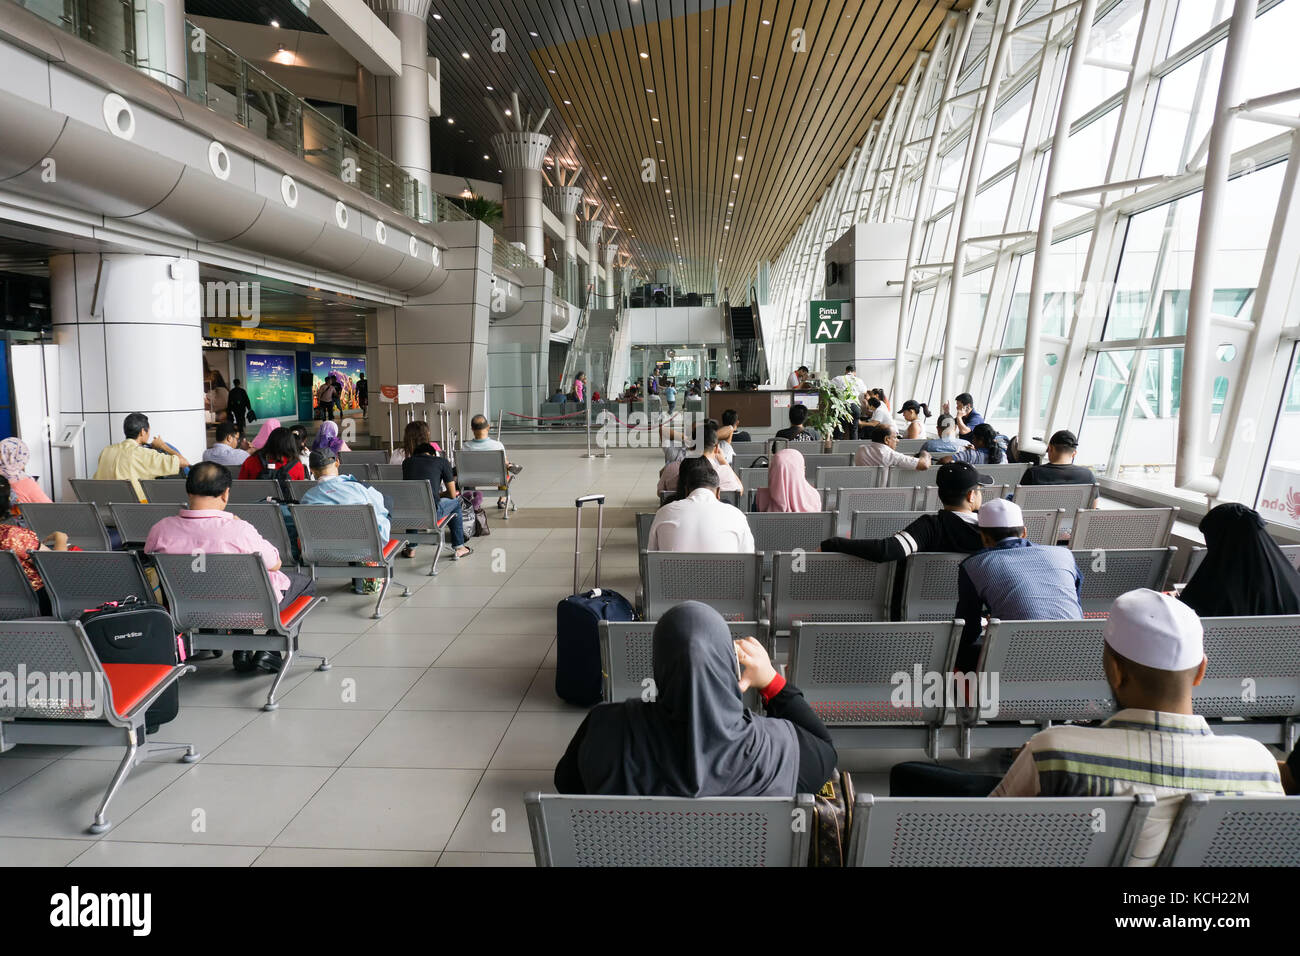 Kota Kinabalu, Malaysia - September 06, 2017: Traveler waiting to board at the departure lounge in Kota Kinabalu - Stock Image